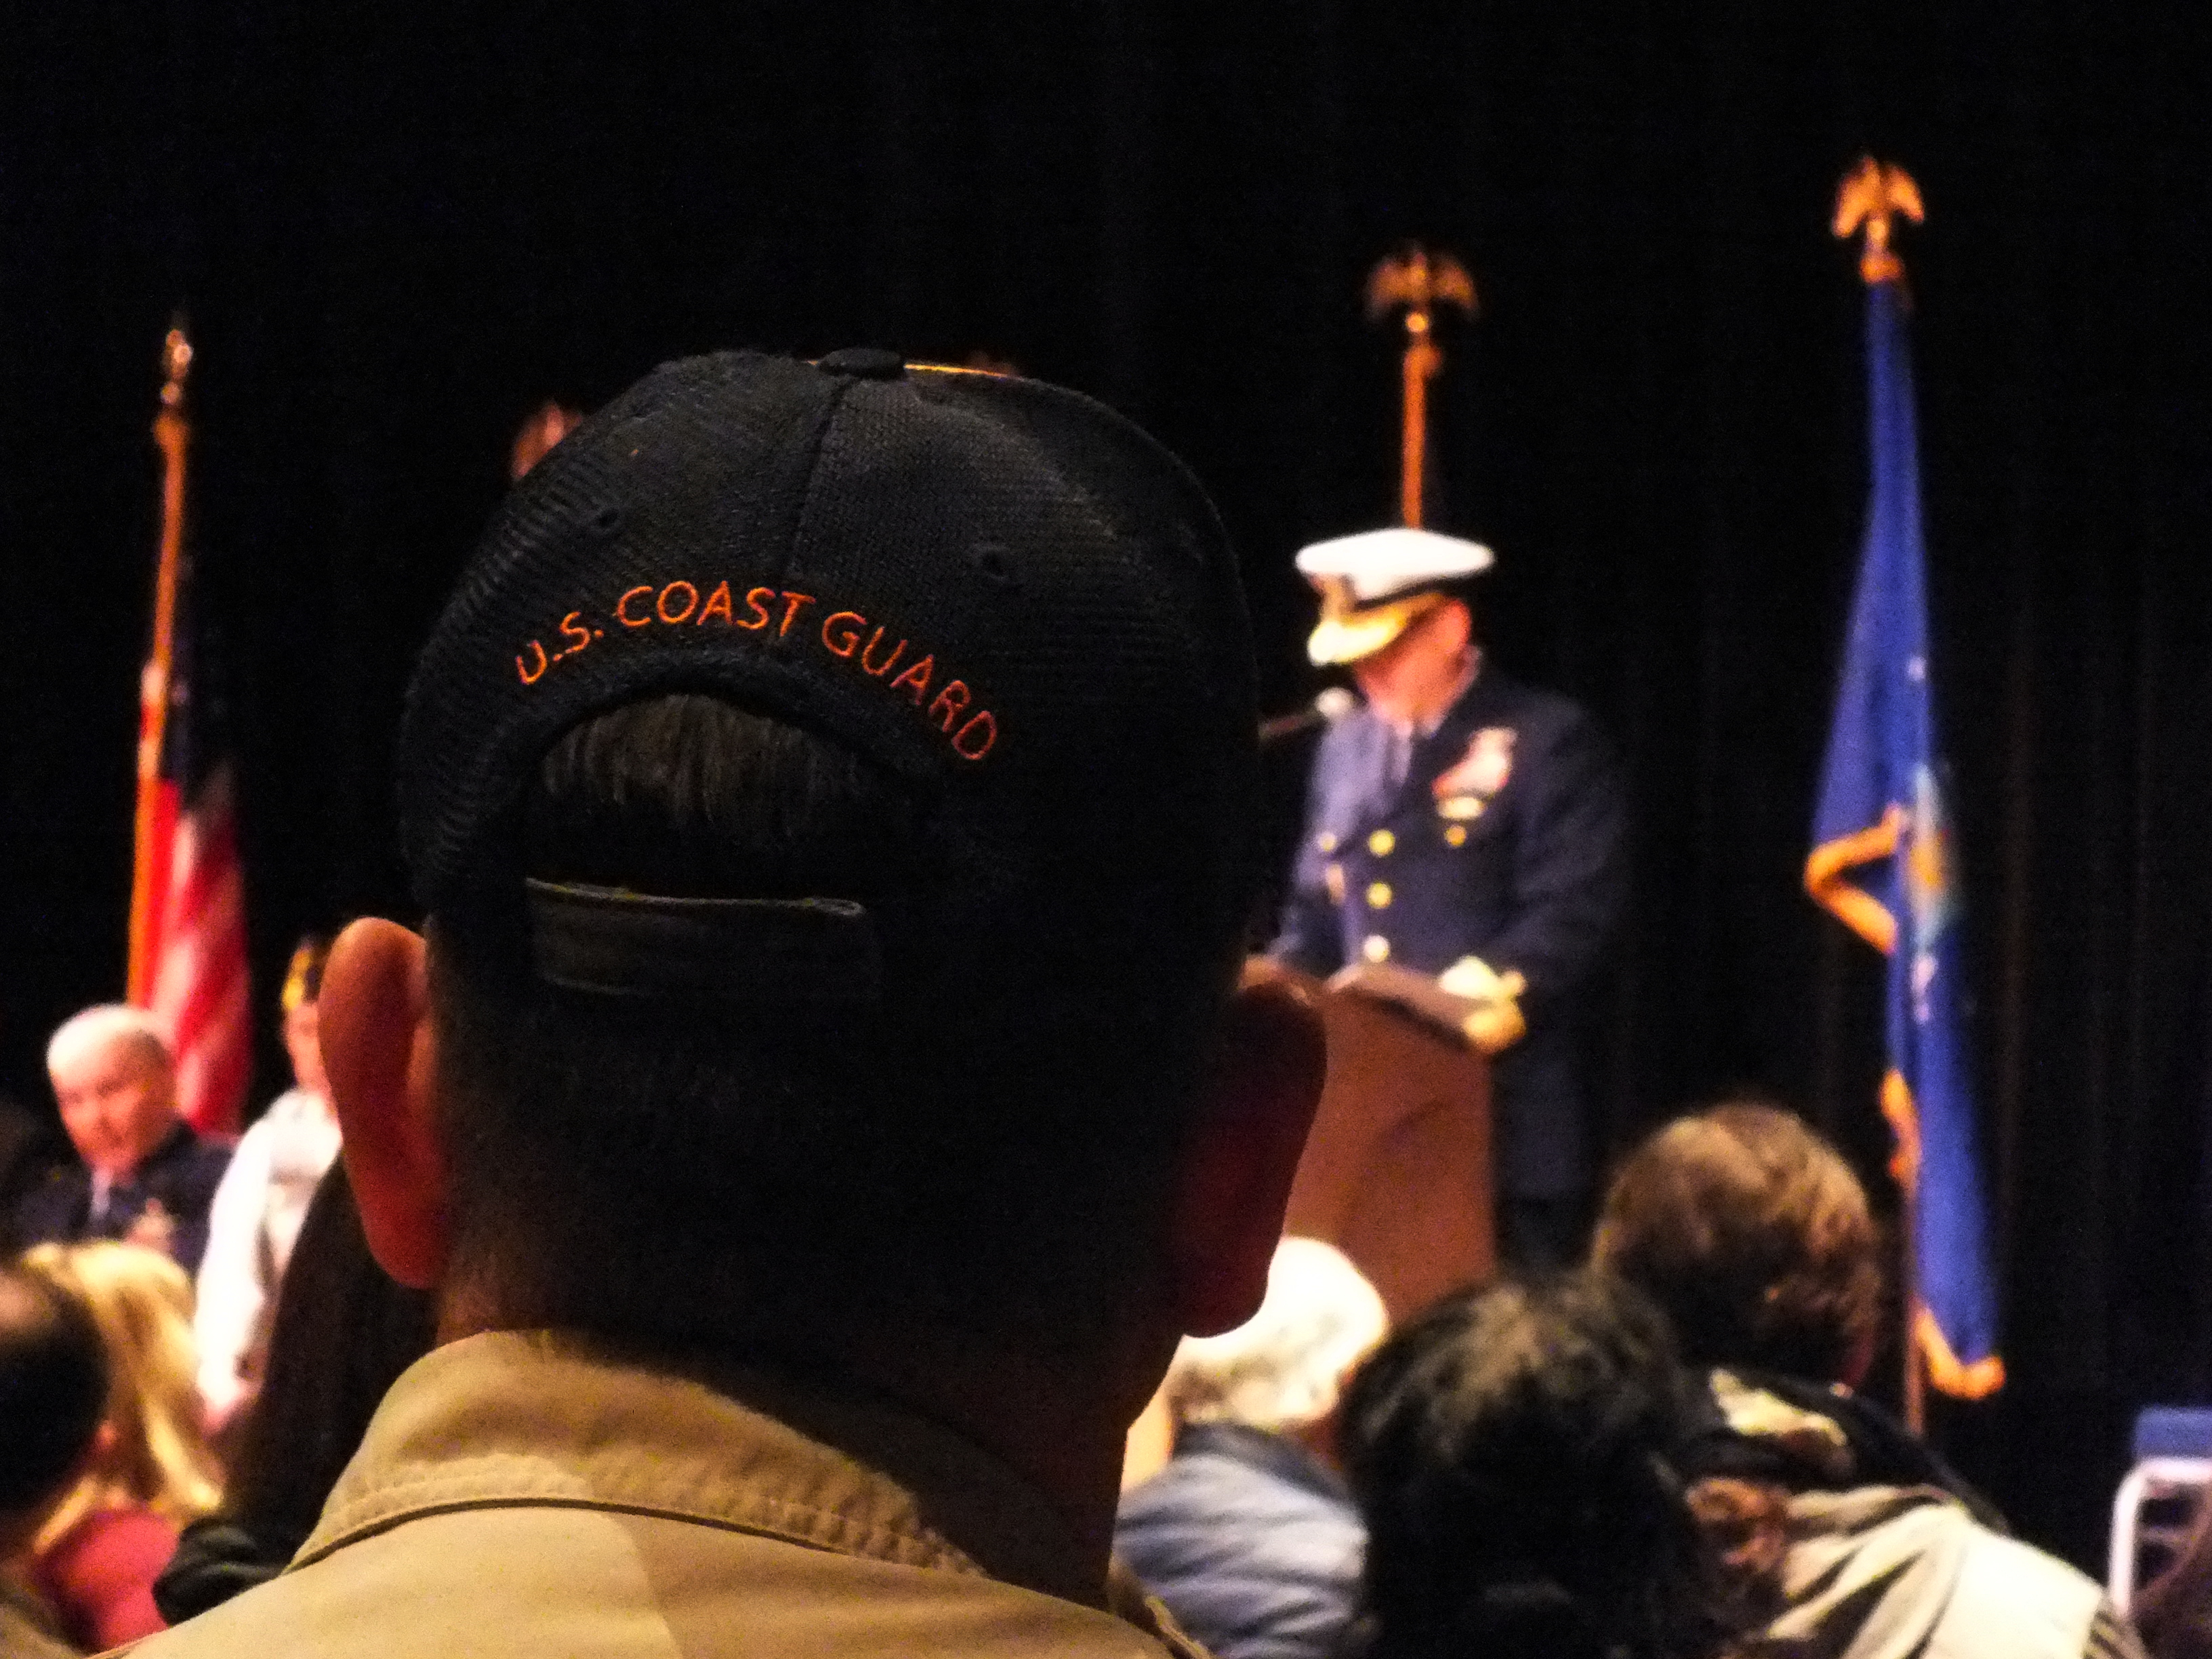 A Boy Scout troop leader, wearing a cap with U.S. Coast Guard embroidered on the back, listens as Rear Adm. Michael McAllister, commander of the U.S. Coast Guard's 17th District, speaks during Friday's Veterans Day observance at Centennial Hall.